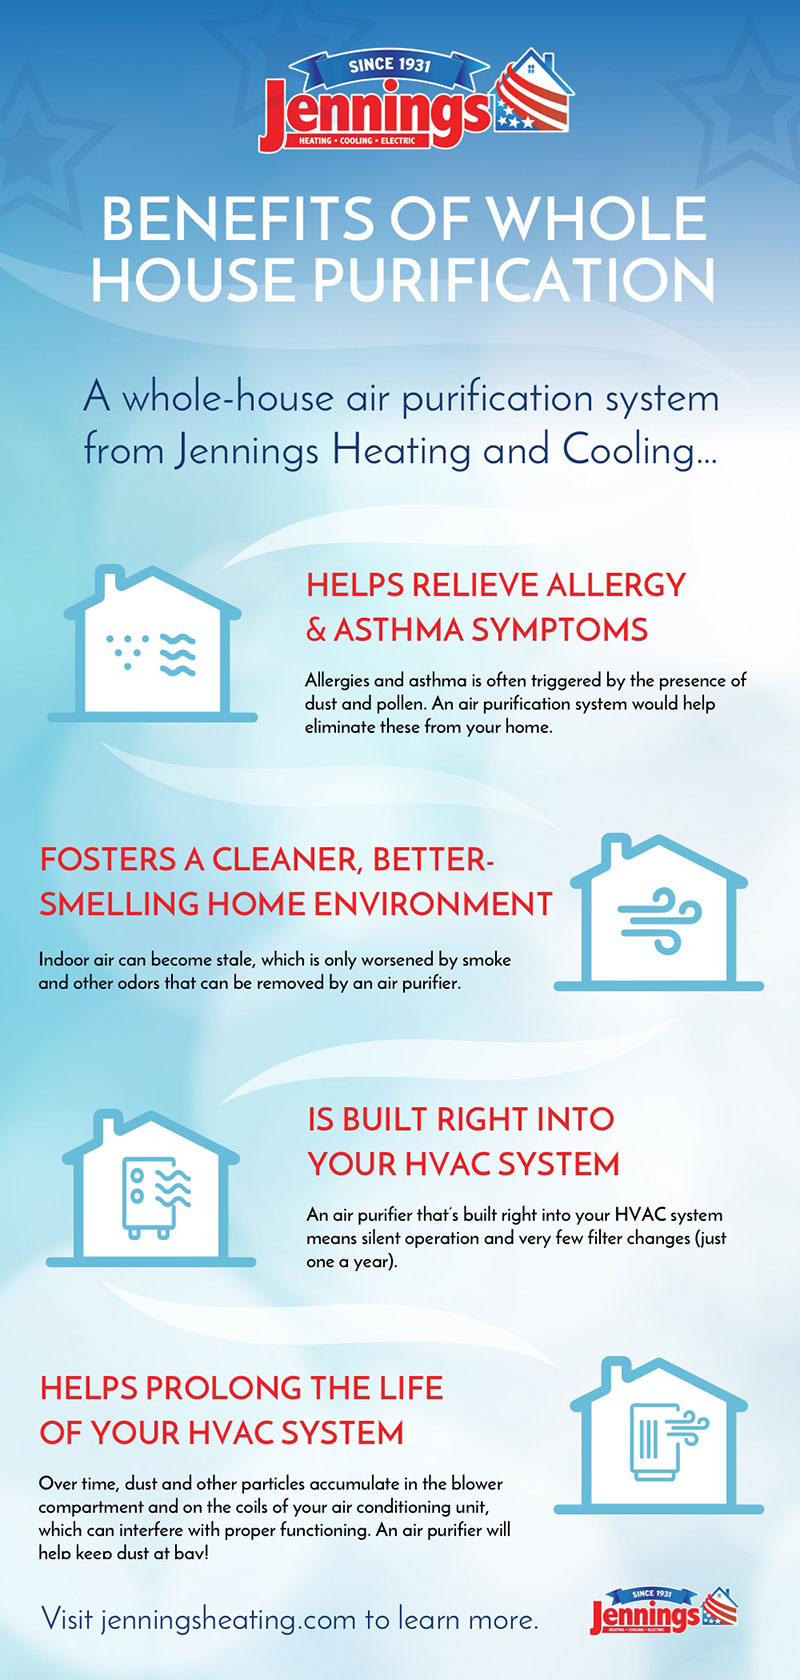 Benefits of Air Purification Jennings Heating and